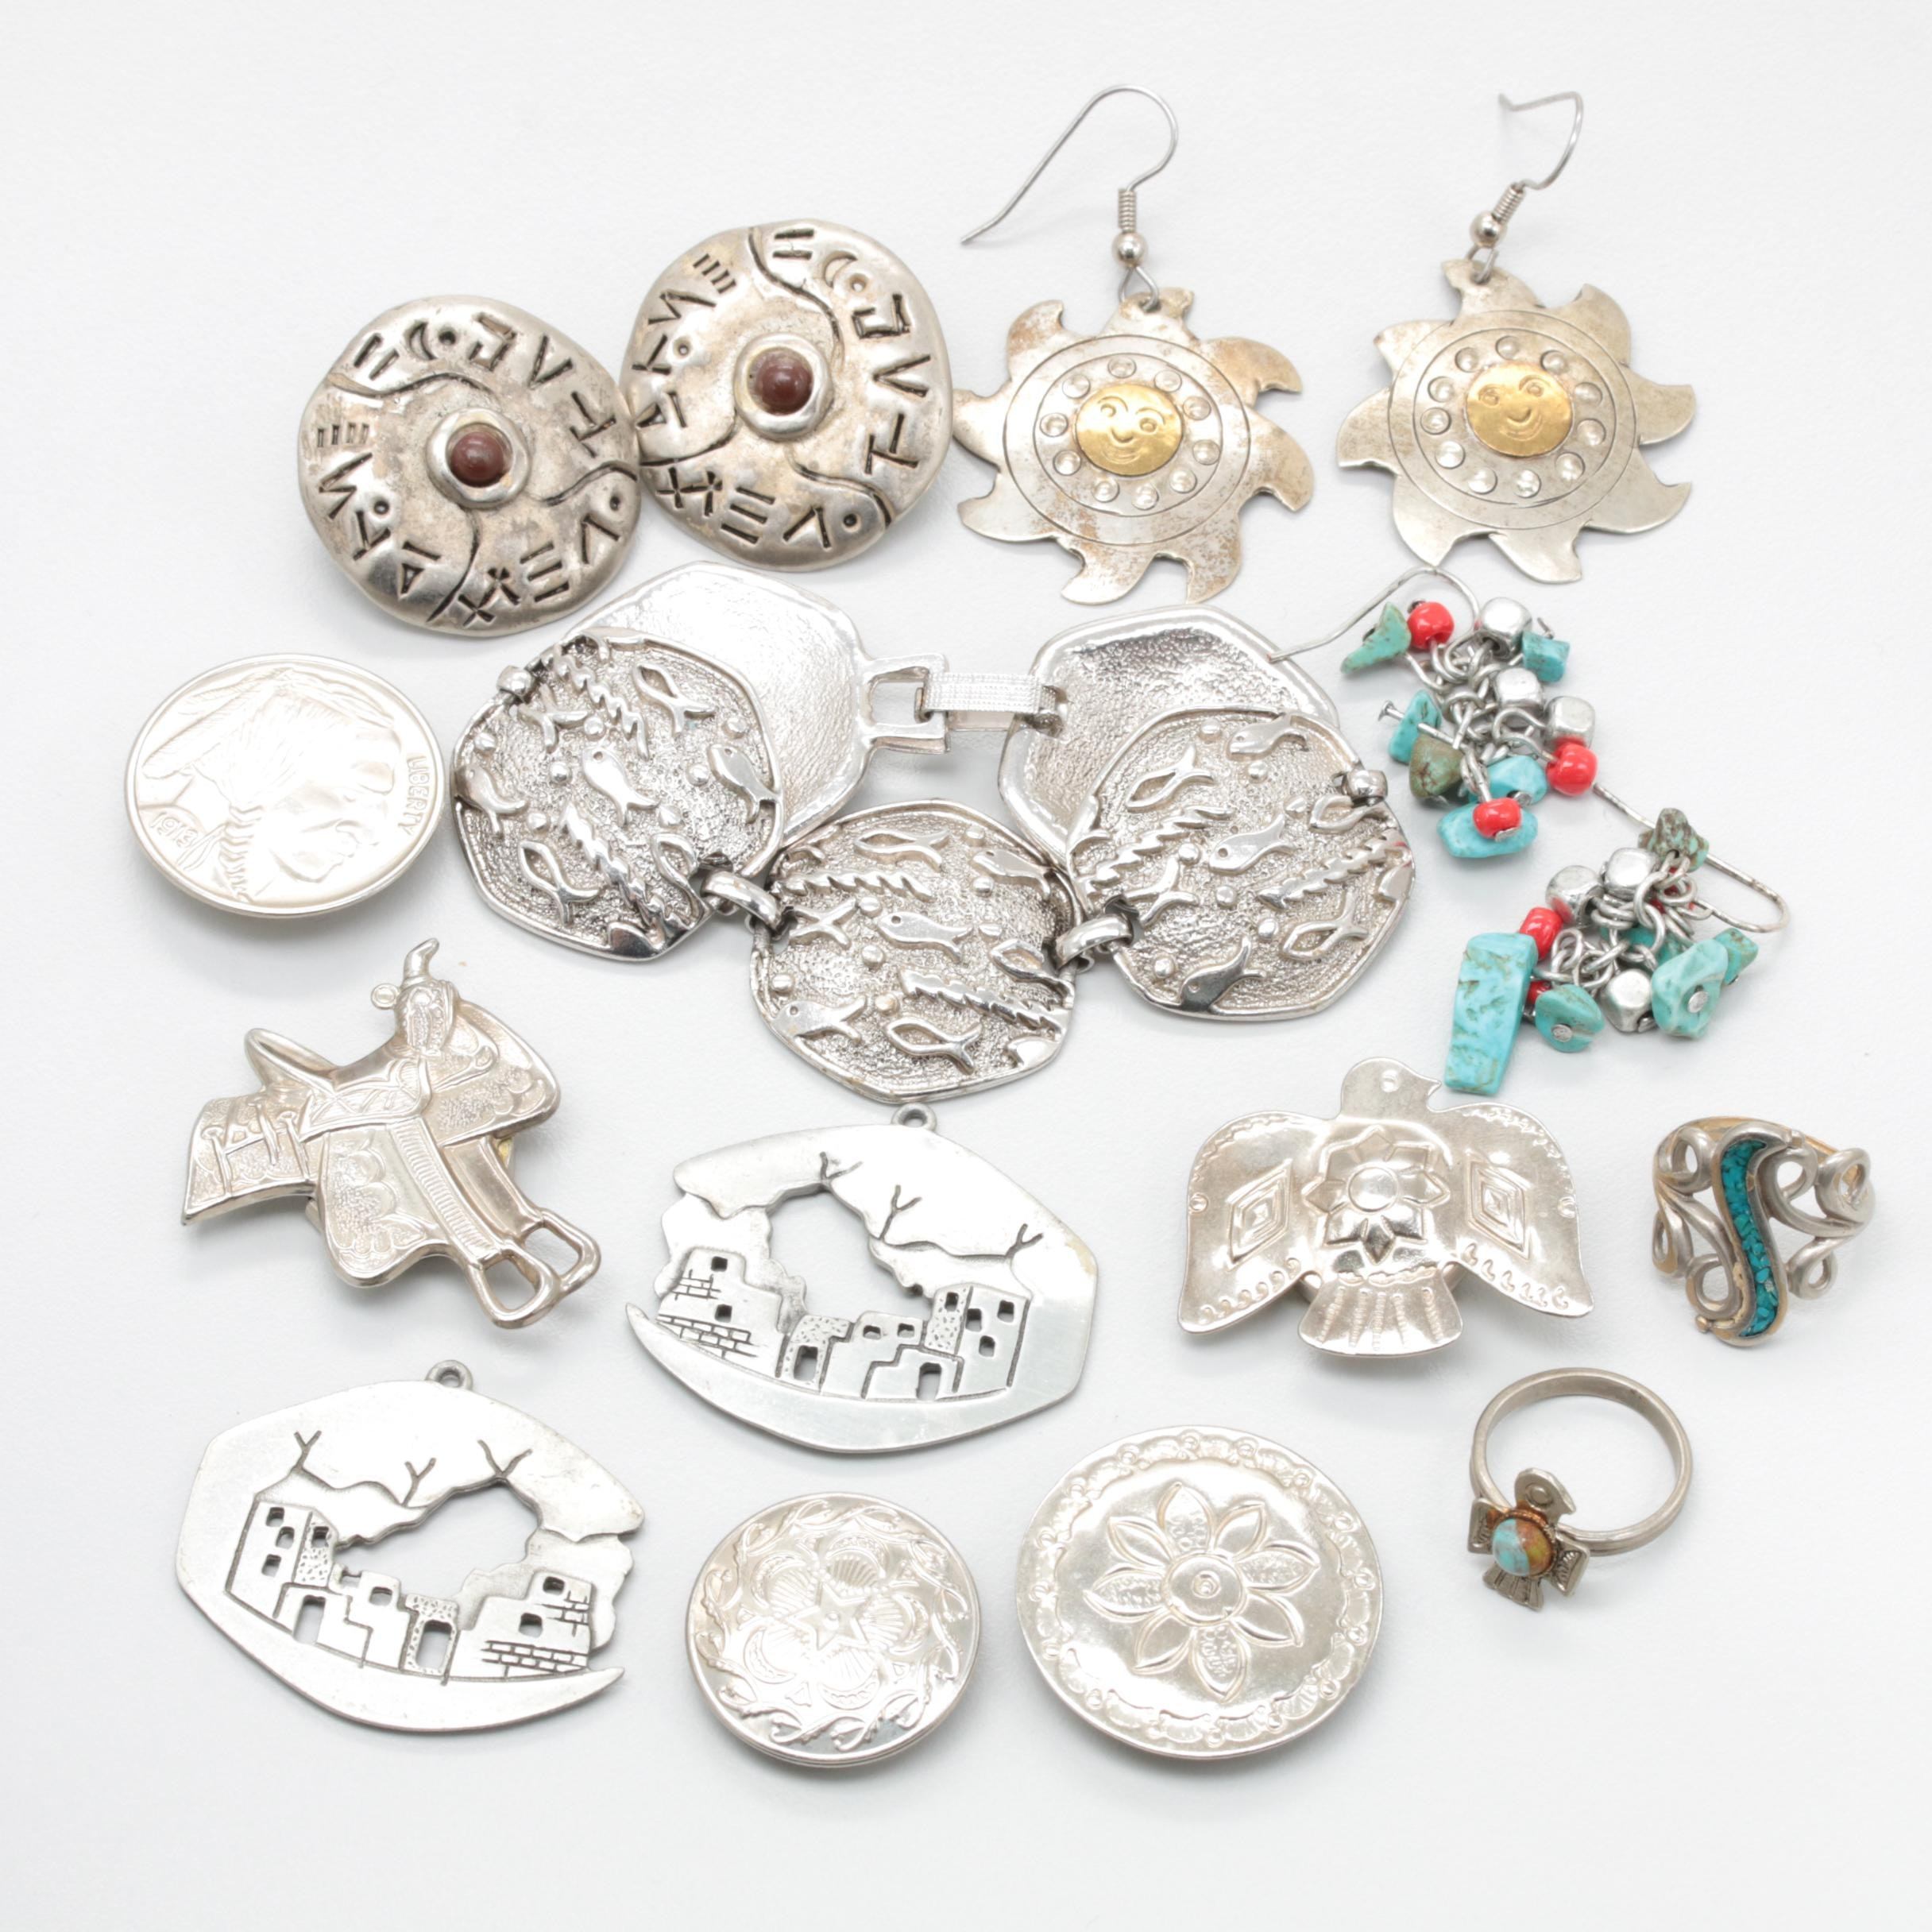 Collection of Southwestern Style Jewelry Including Magnesite and Imitation Stone